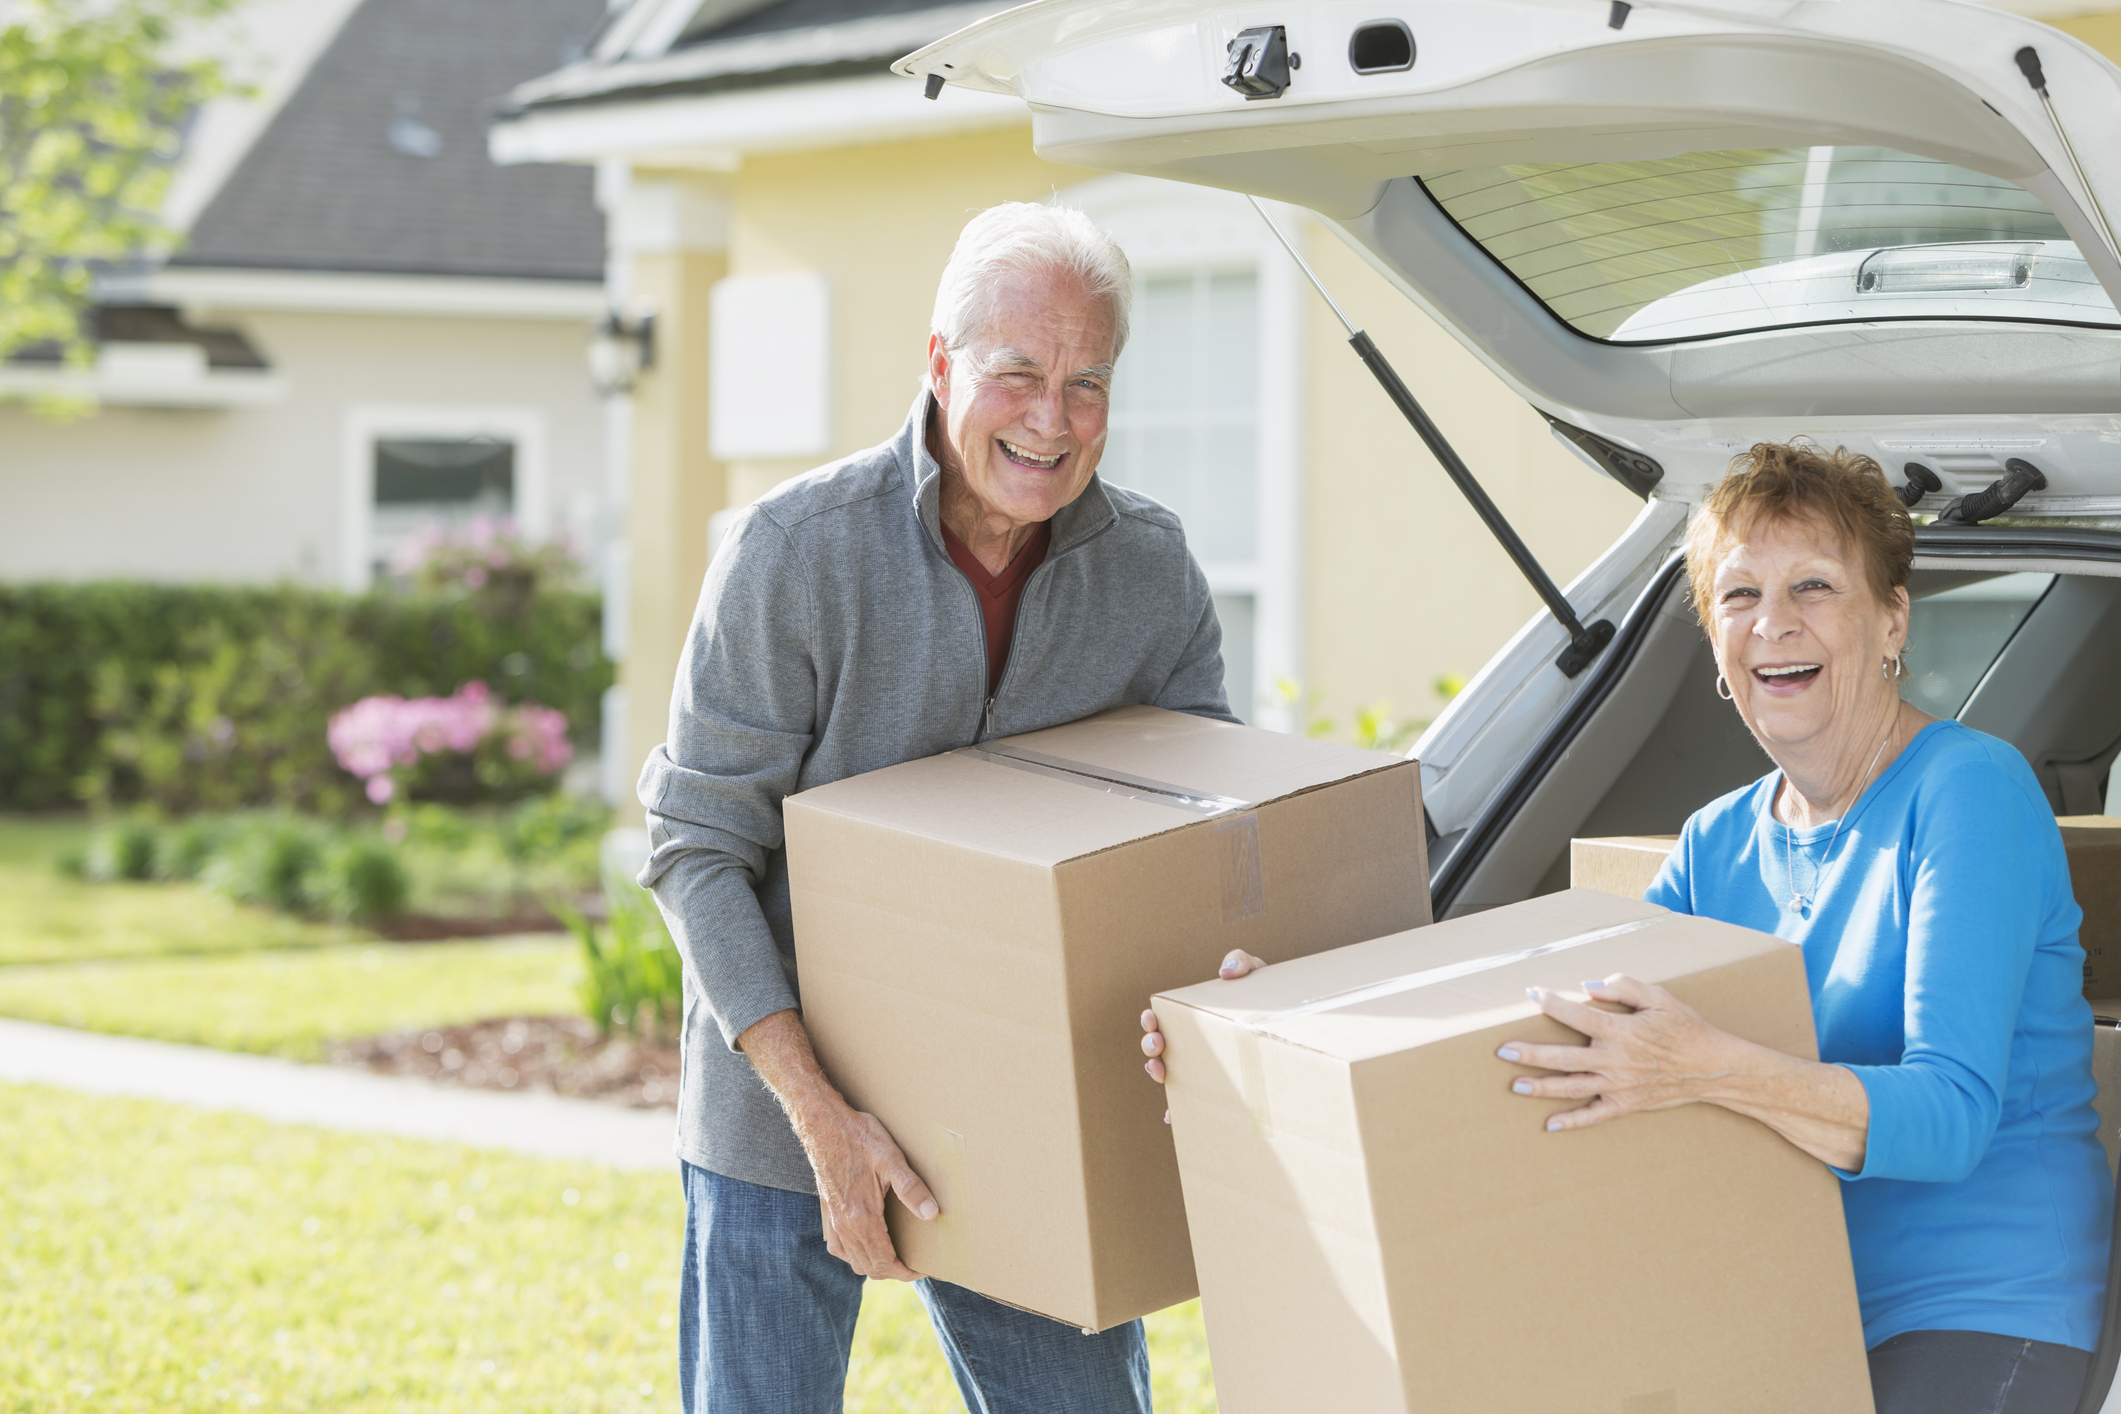 A happy senior couple moving boxes into or out of the back of their car. They are moving house, perhaps downsizing. They are looking at the camera, smiling representing downsizing and condos in bradenton.